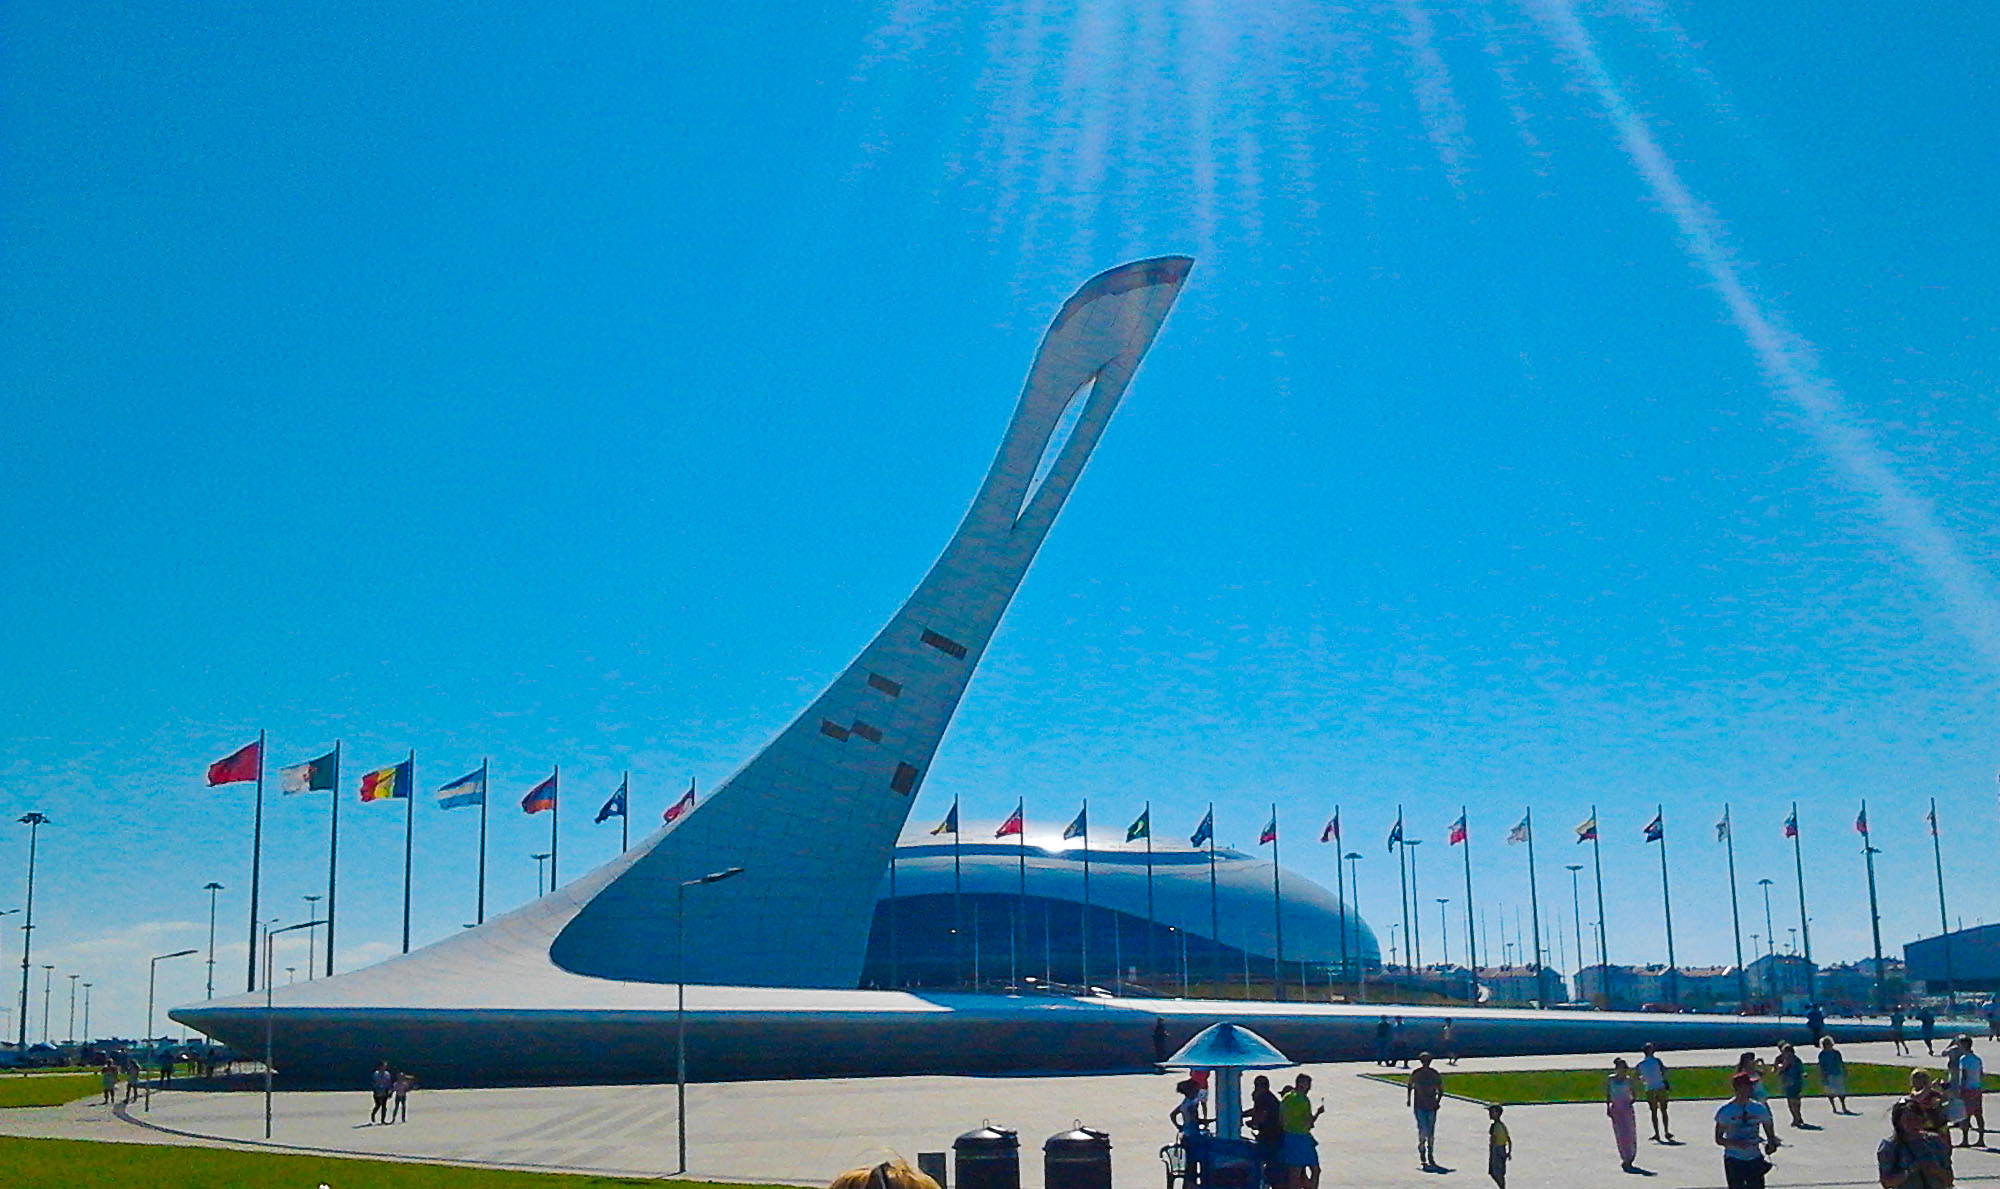 22nd Winter Olympic Games (Sochi)